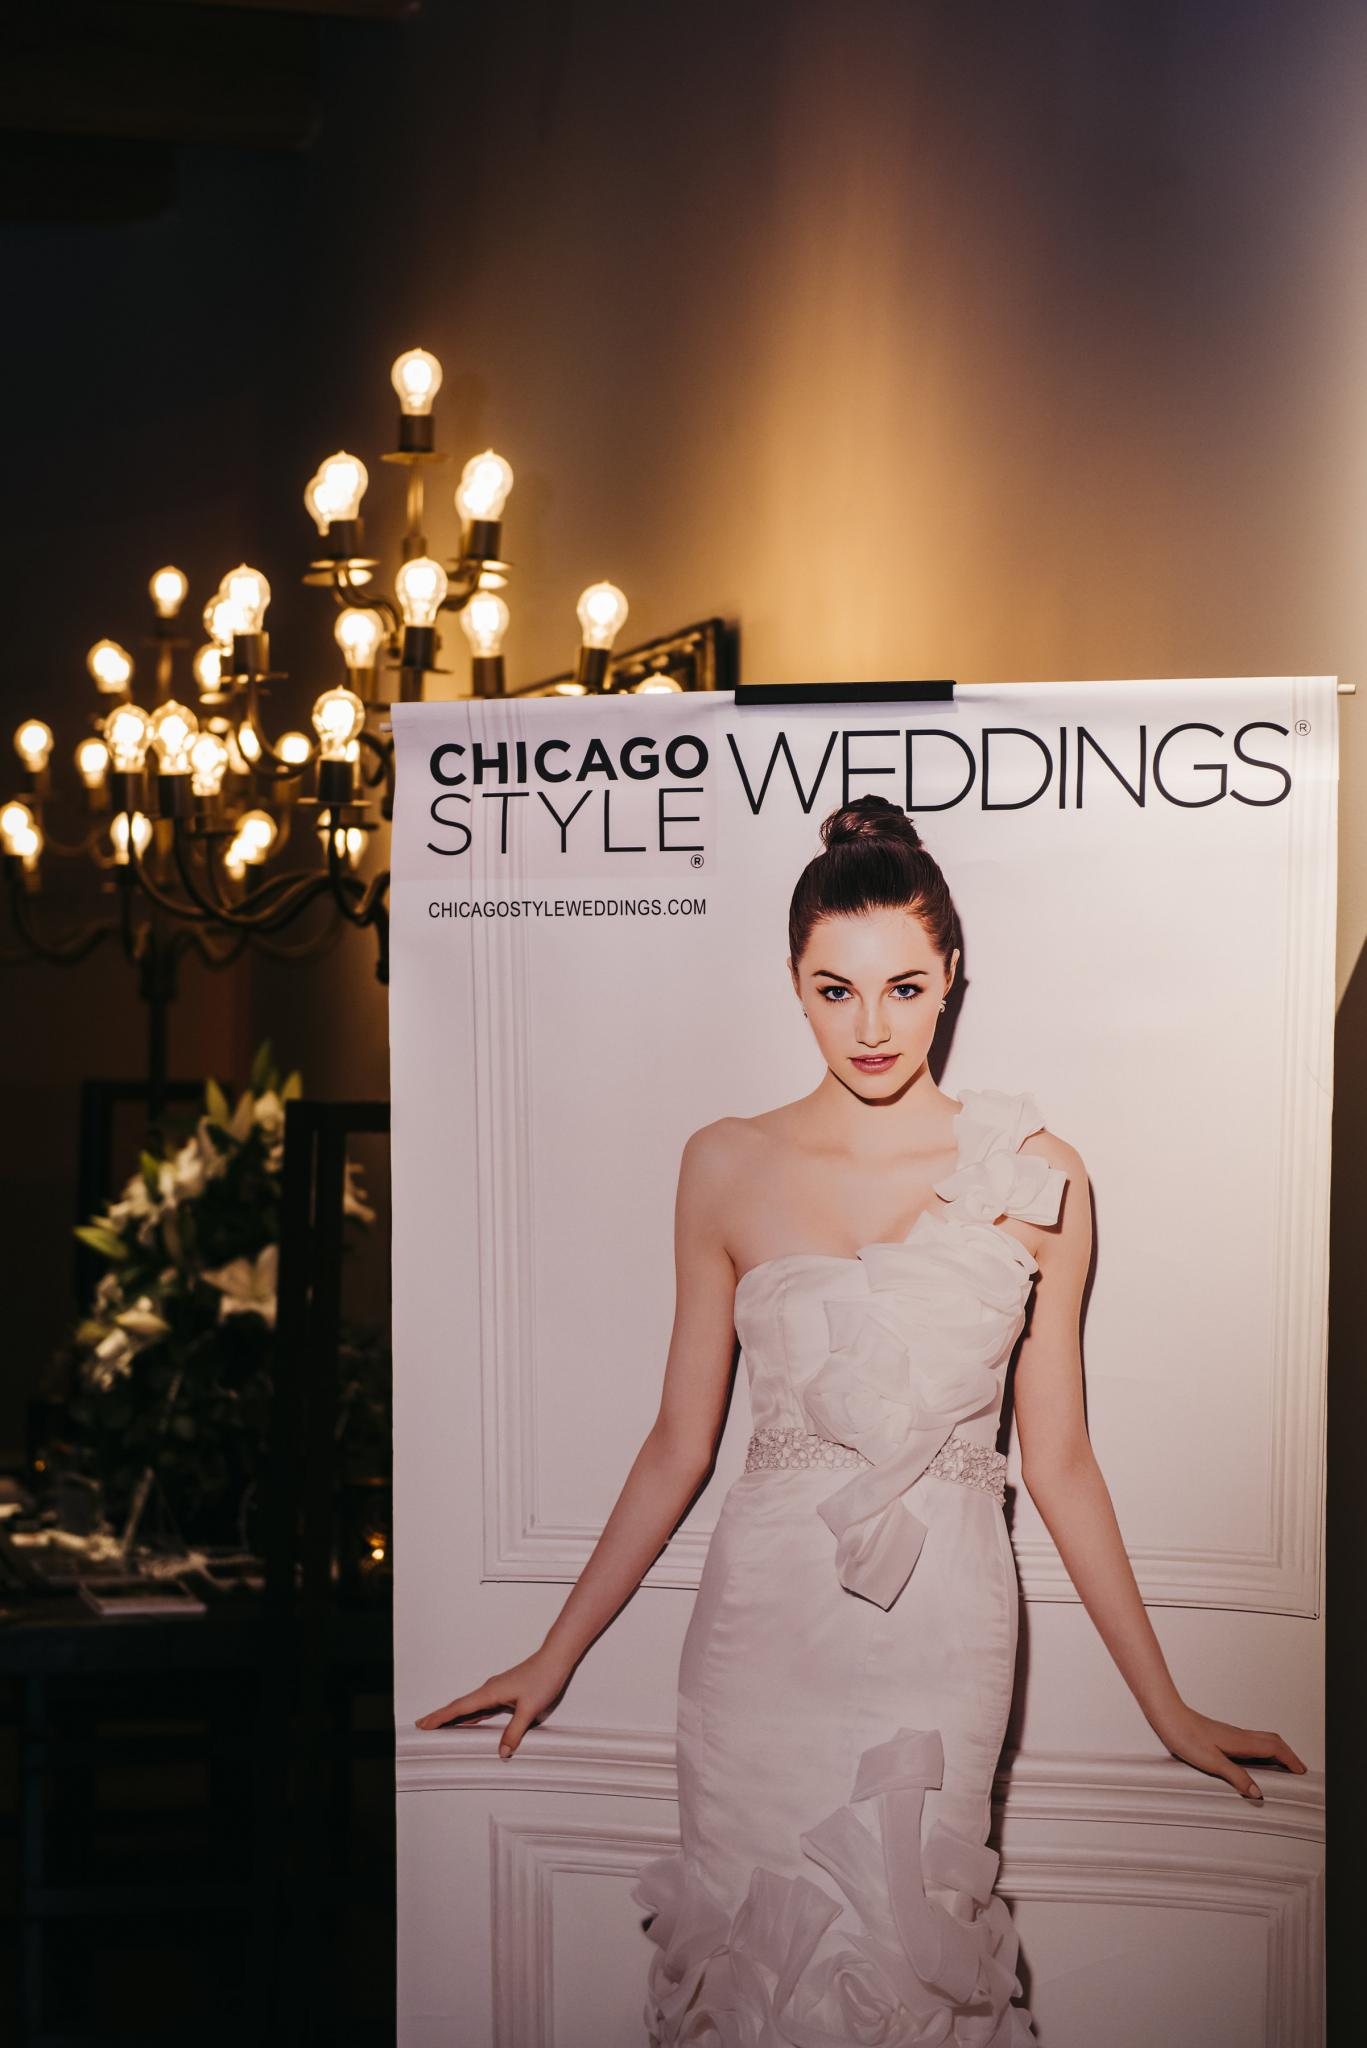 ChicagoStyle Weddings